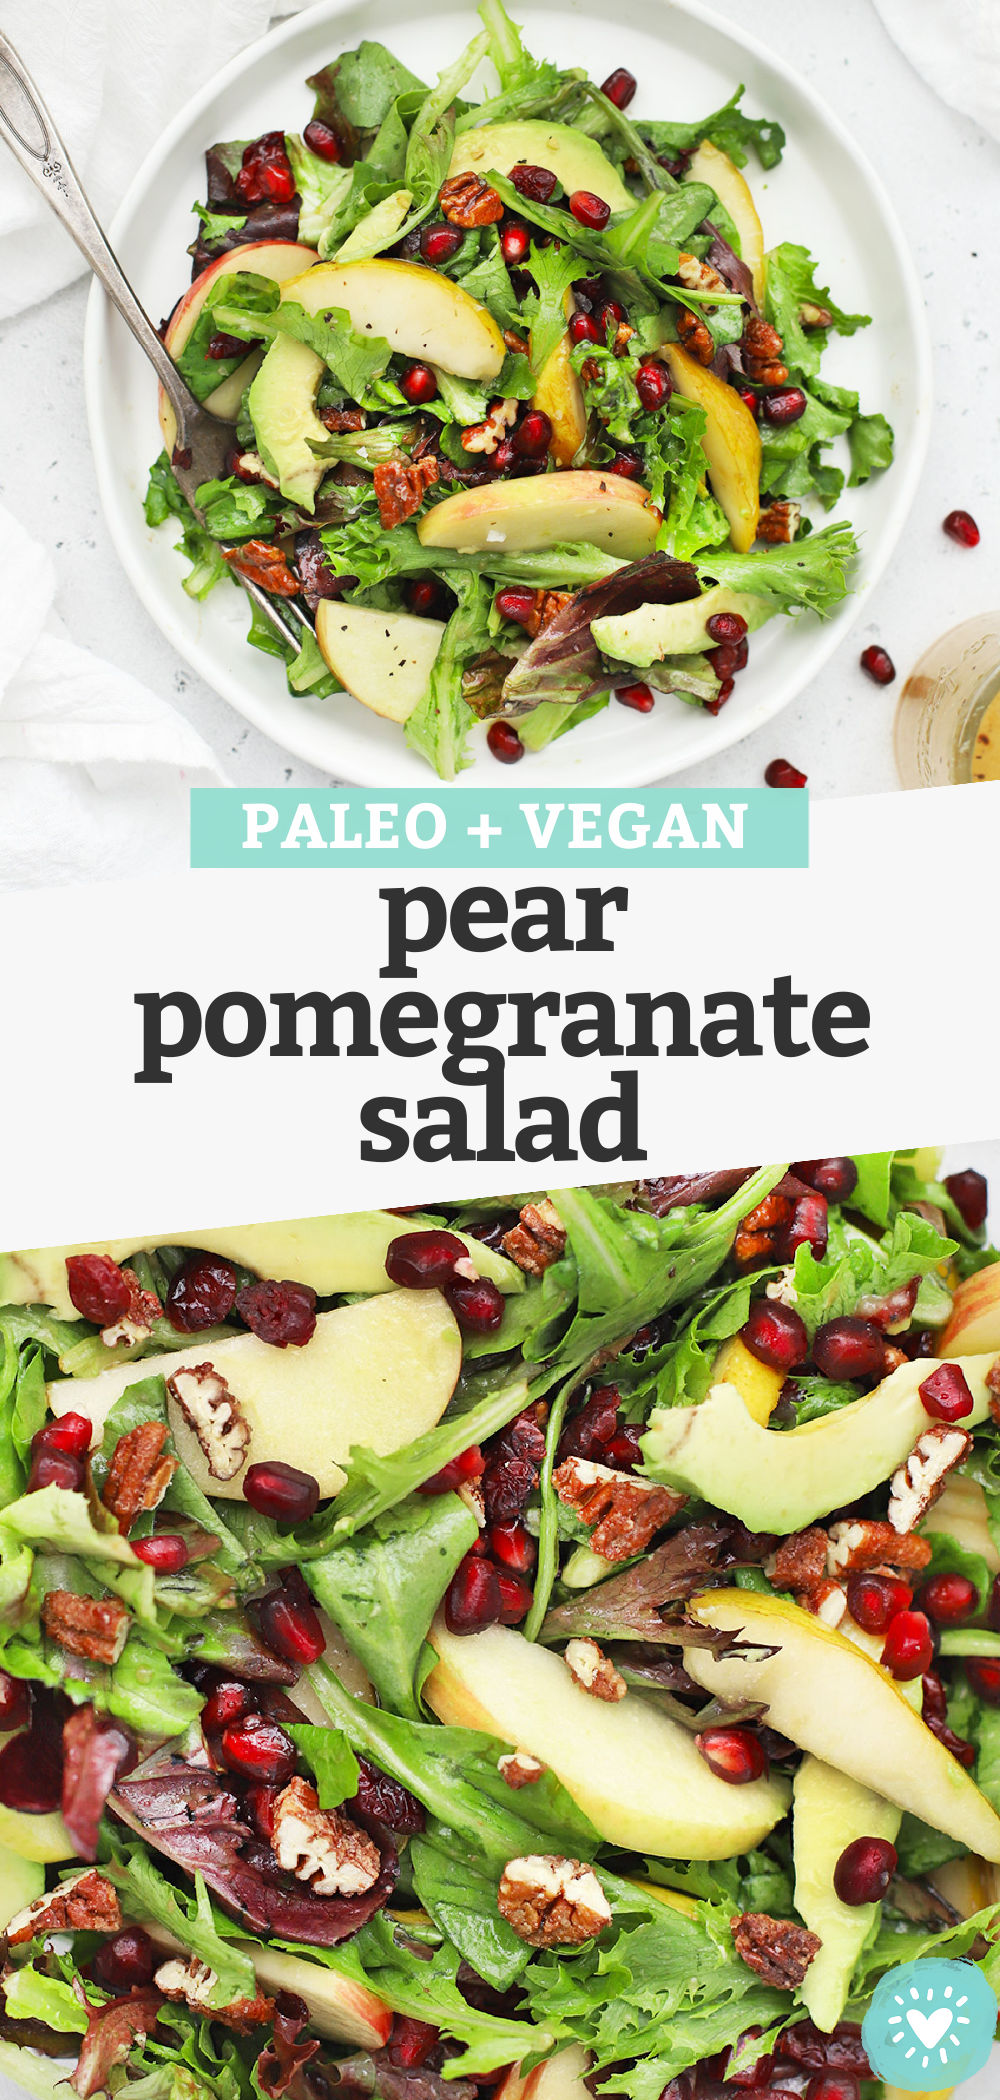 Pear Pomegranate Salad  - This pear and pomegranate salad has a beautiful mix of color and flavor. You'll love the simple dressing that ties it all together! (Gluten-Free + Vegan) // Pomegranate Salad Recipe // Side Salad // Holiday salad // Christmas side dish // Thanksgiving side dish #pomegranate #salad #sidedish #sidesalad #paleo #vegan